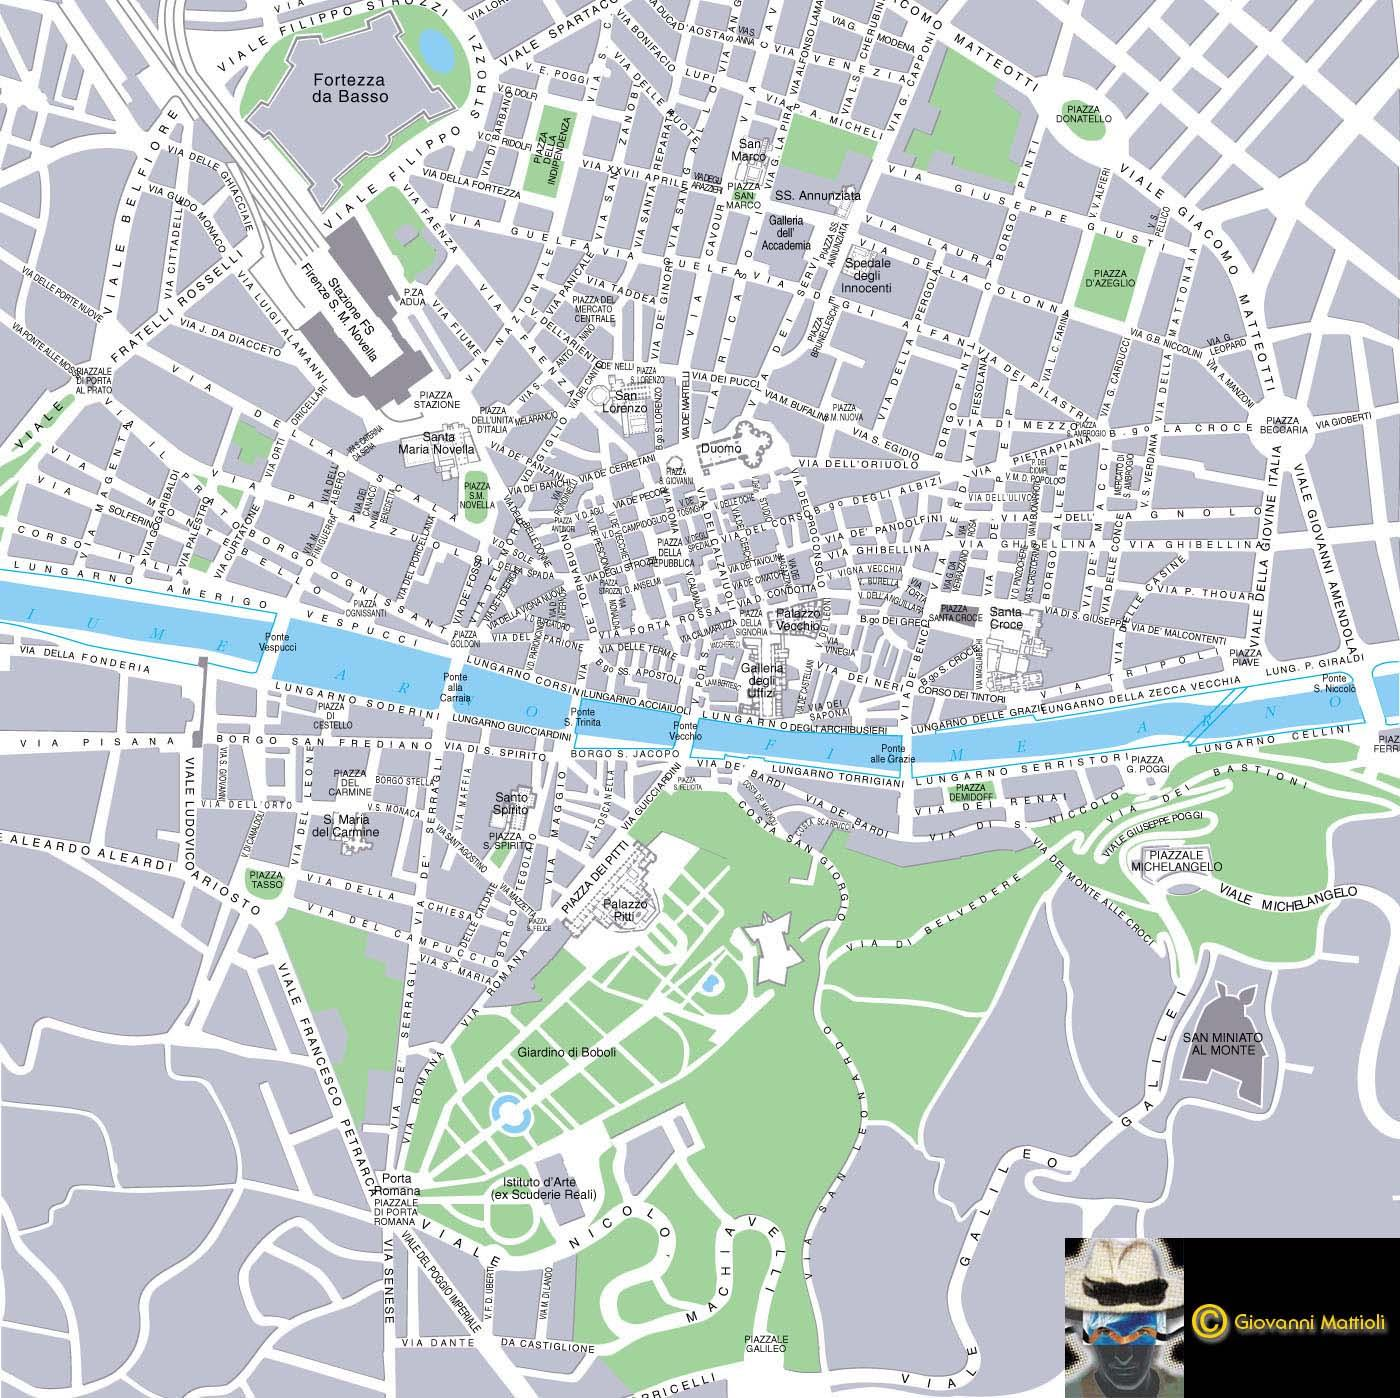 Florence map see map details from geocities co jp